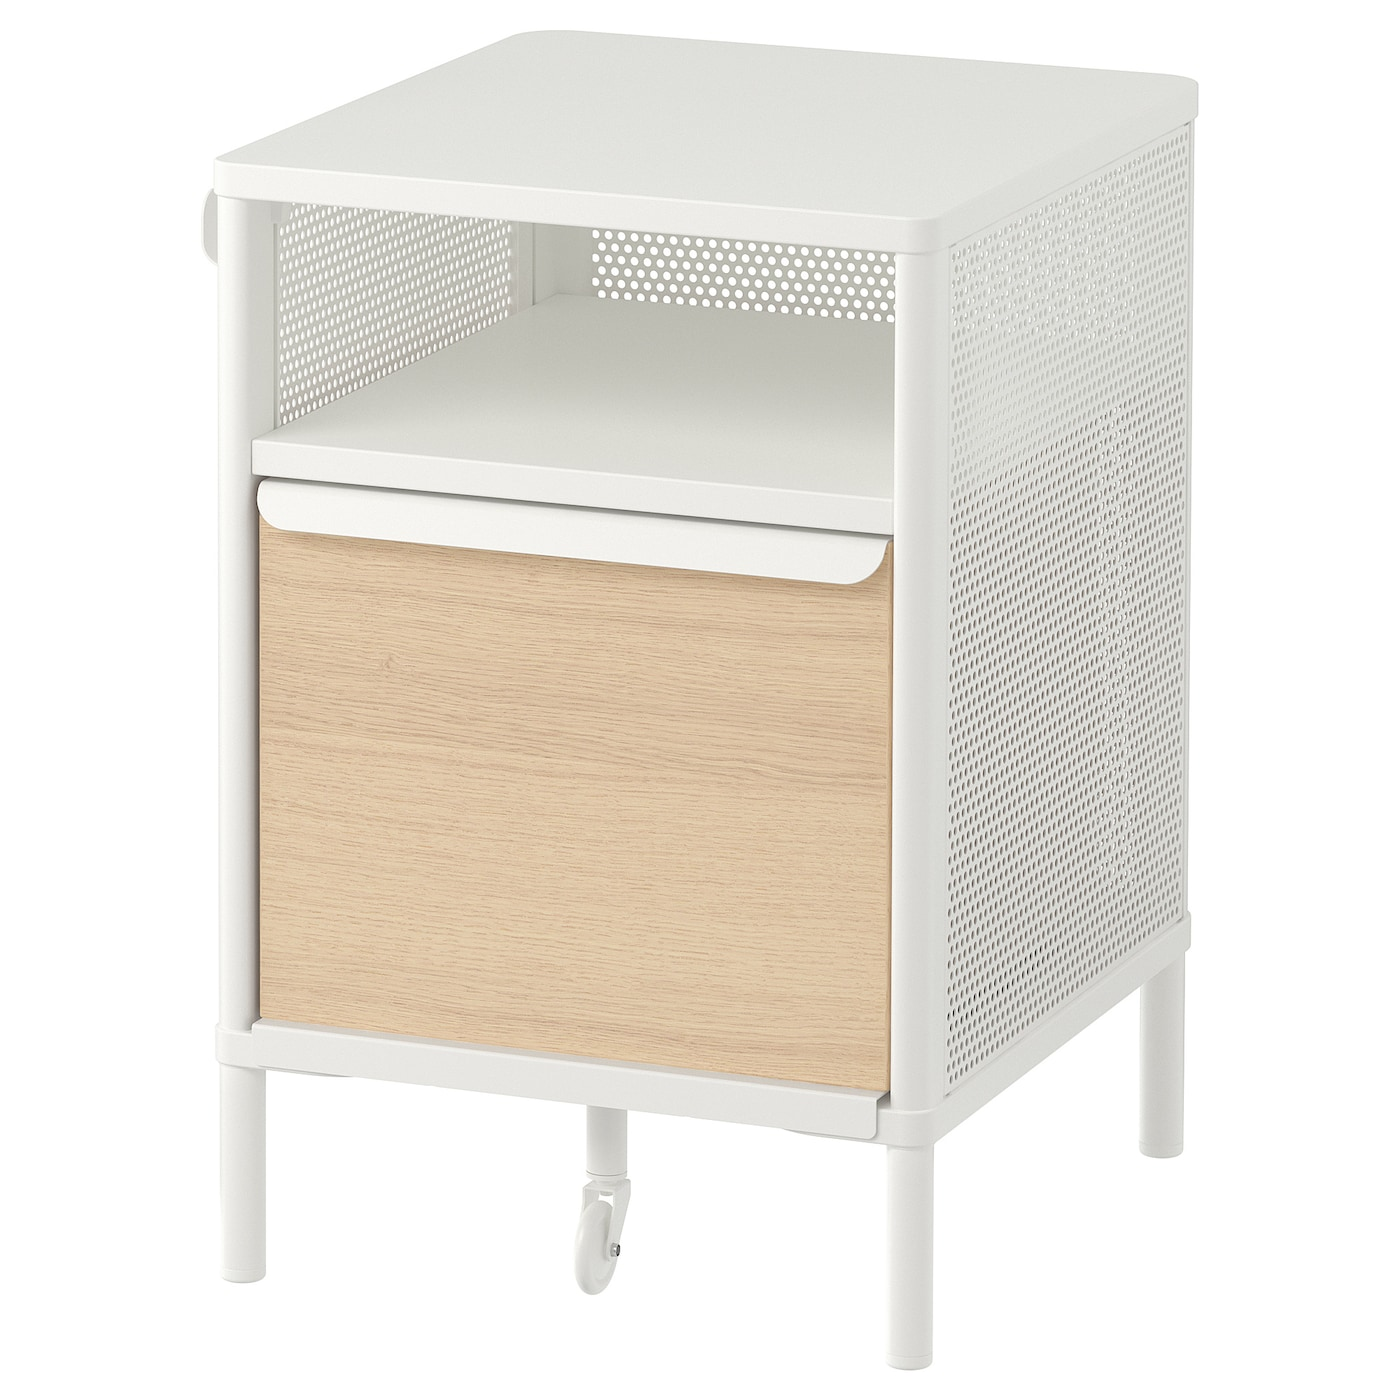 IKEA BEKANT storage unit on legs 10 year guarantee. Read about the terms in the guarantee brochure.